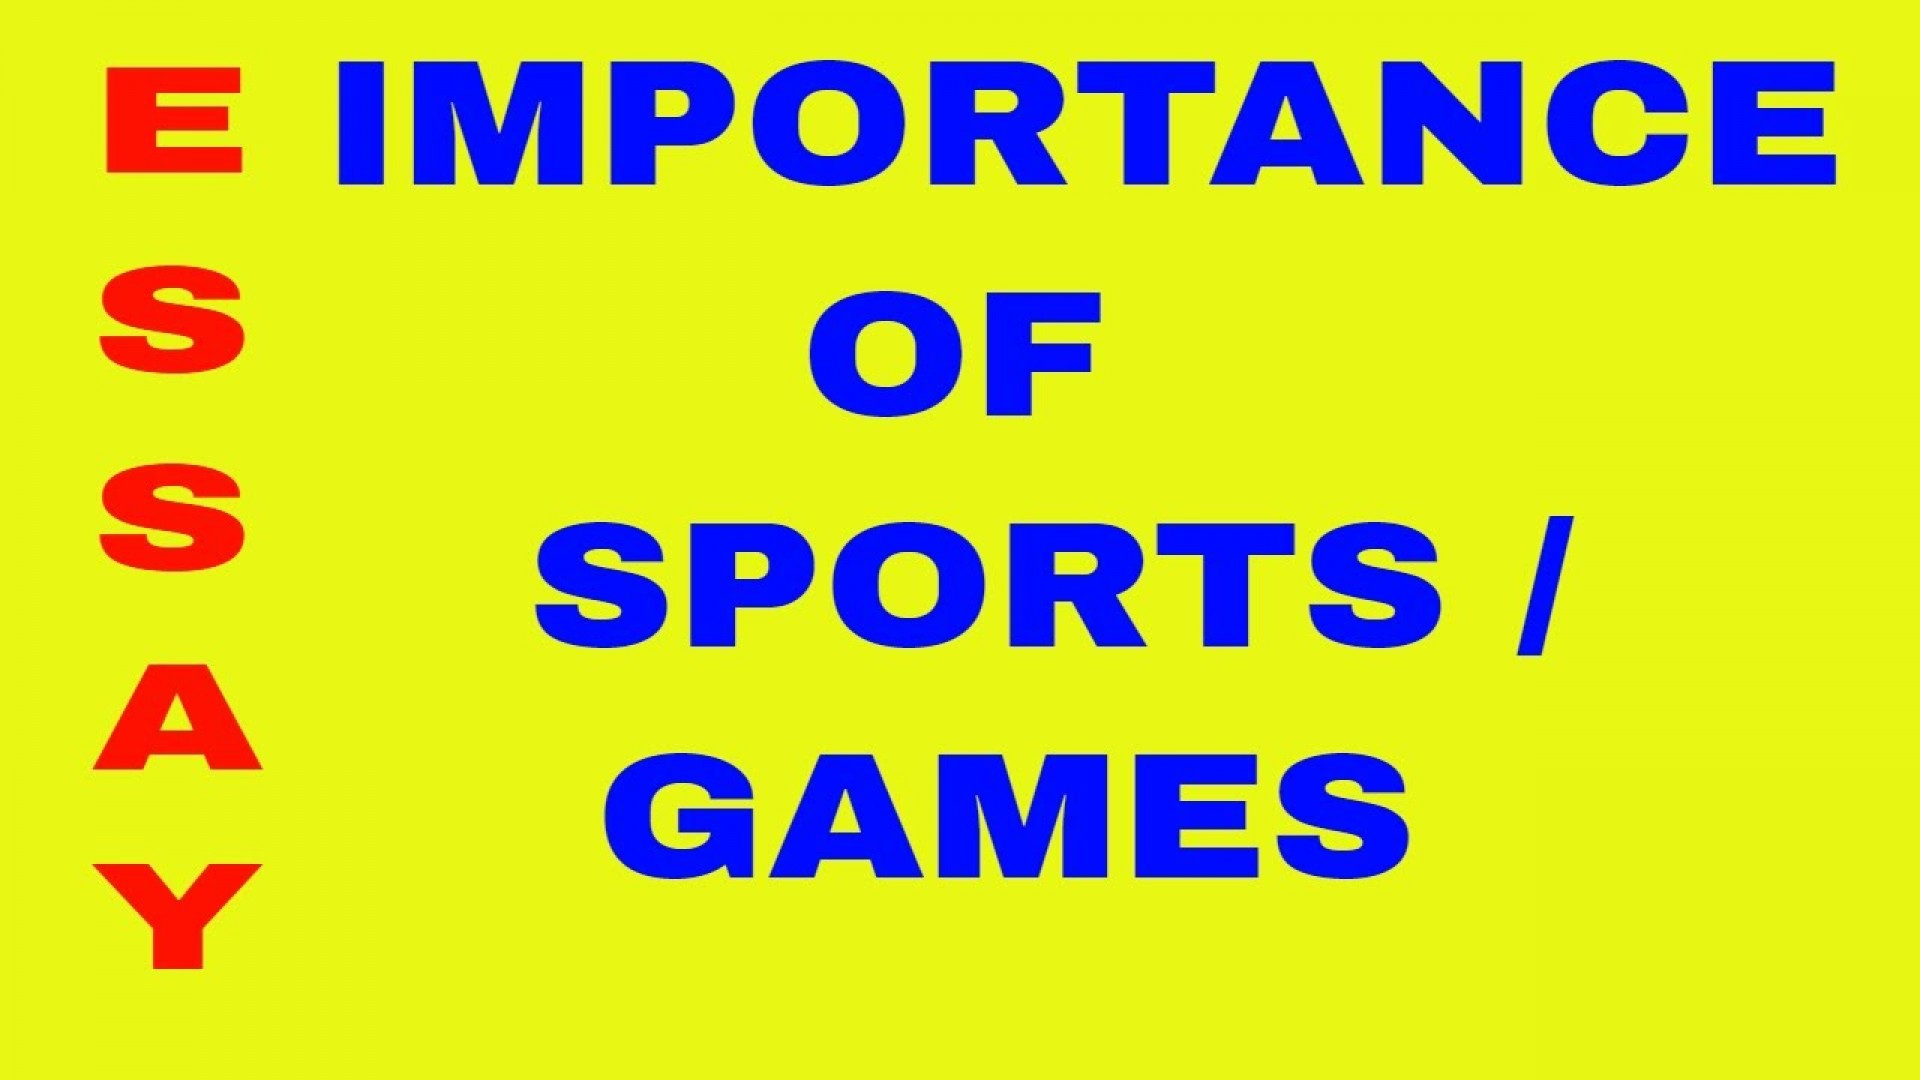 013 Essay About Sports Maxresdefault Awesome And Games Narrative Sportsfest Argumentative Sportsmanship 1920